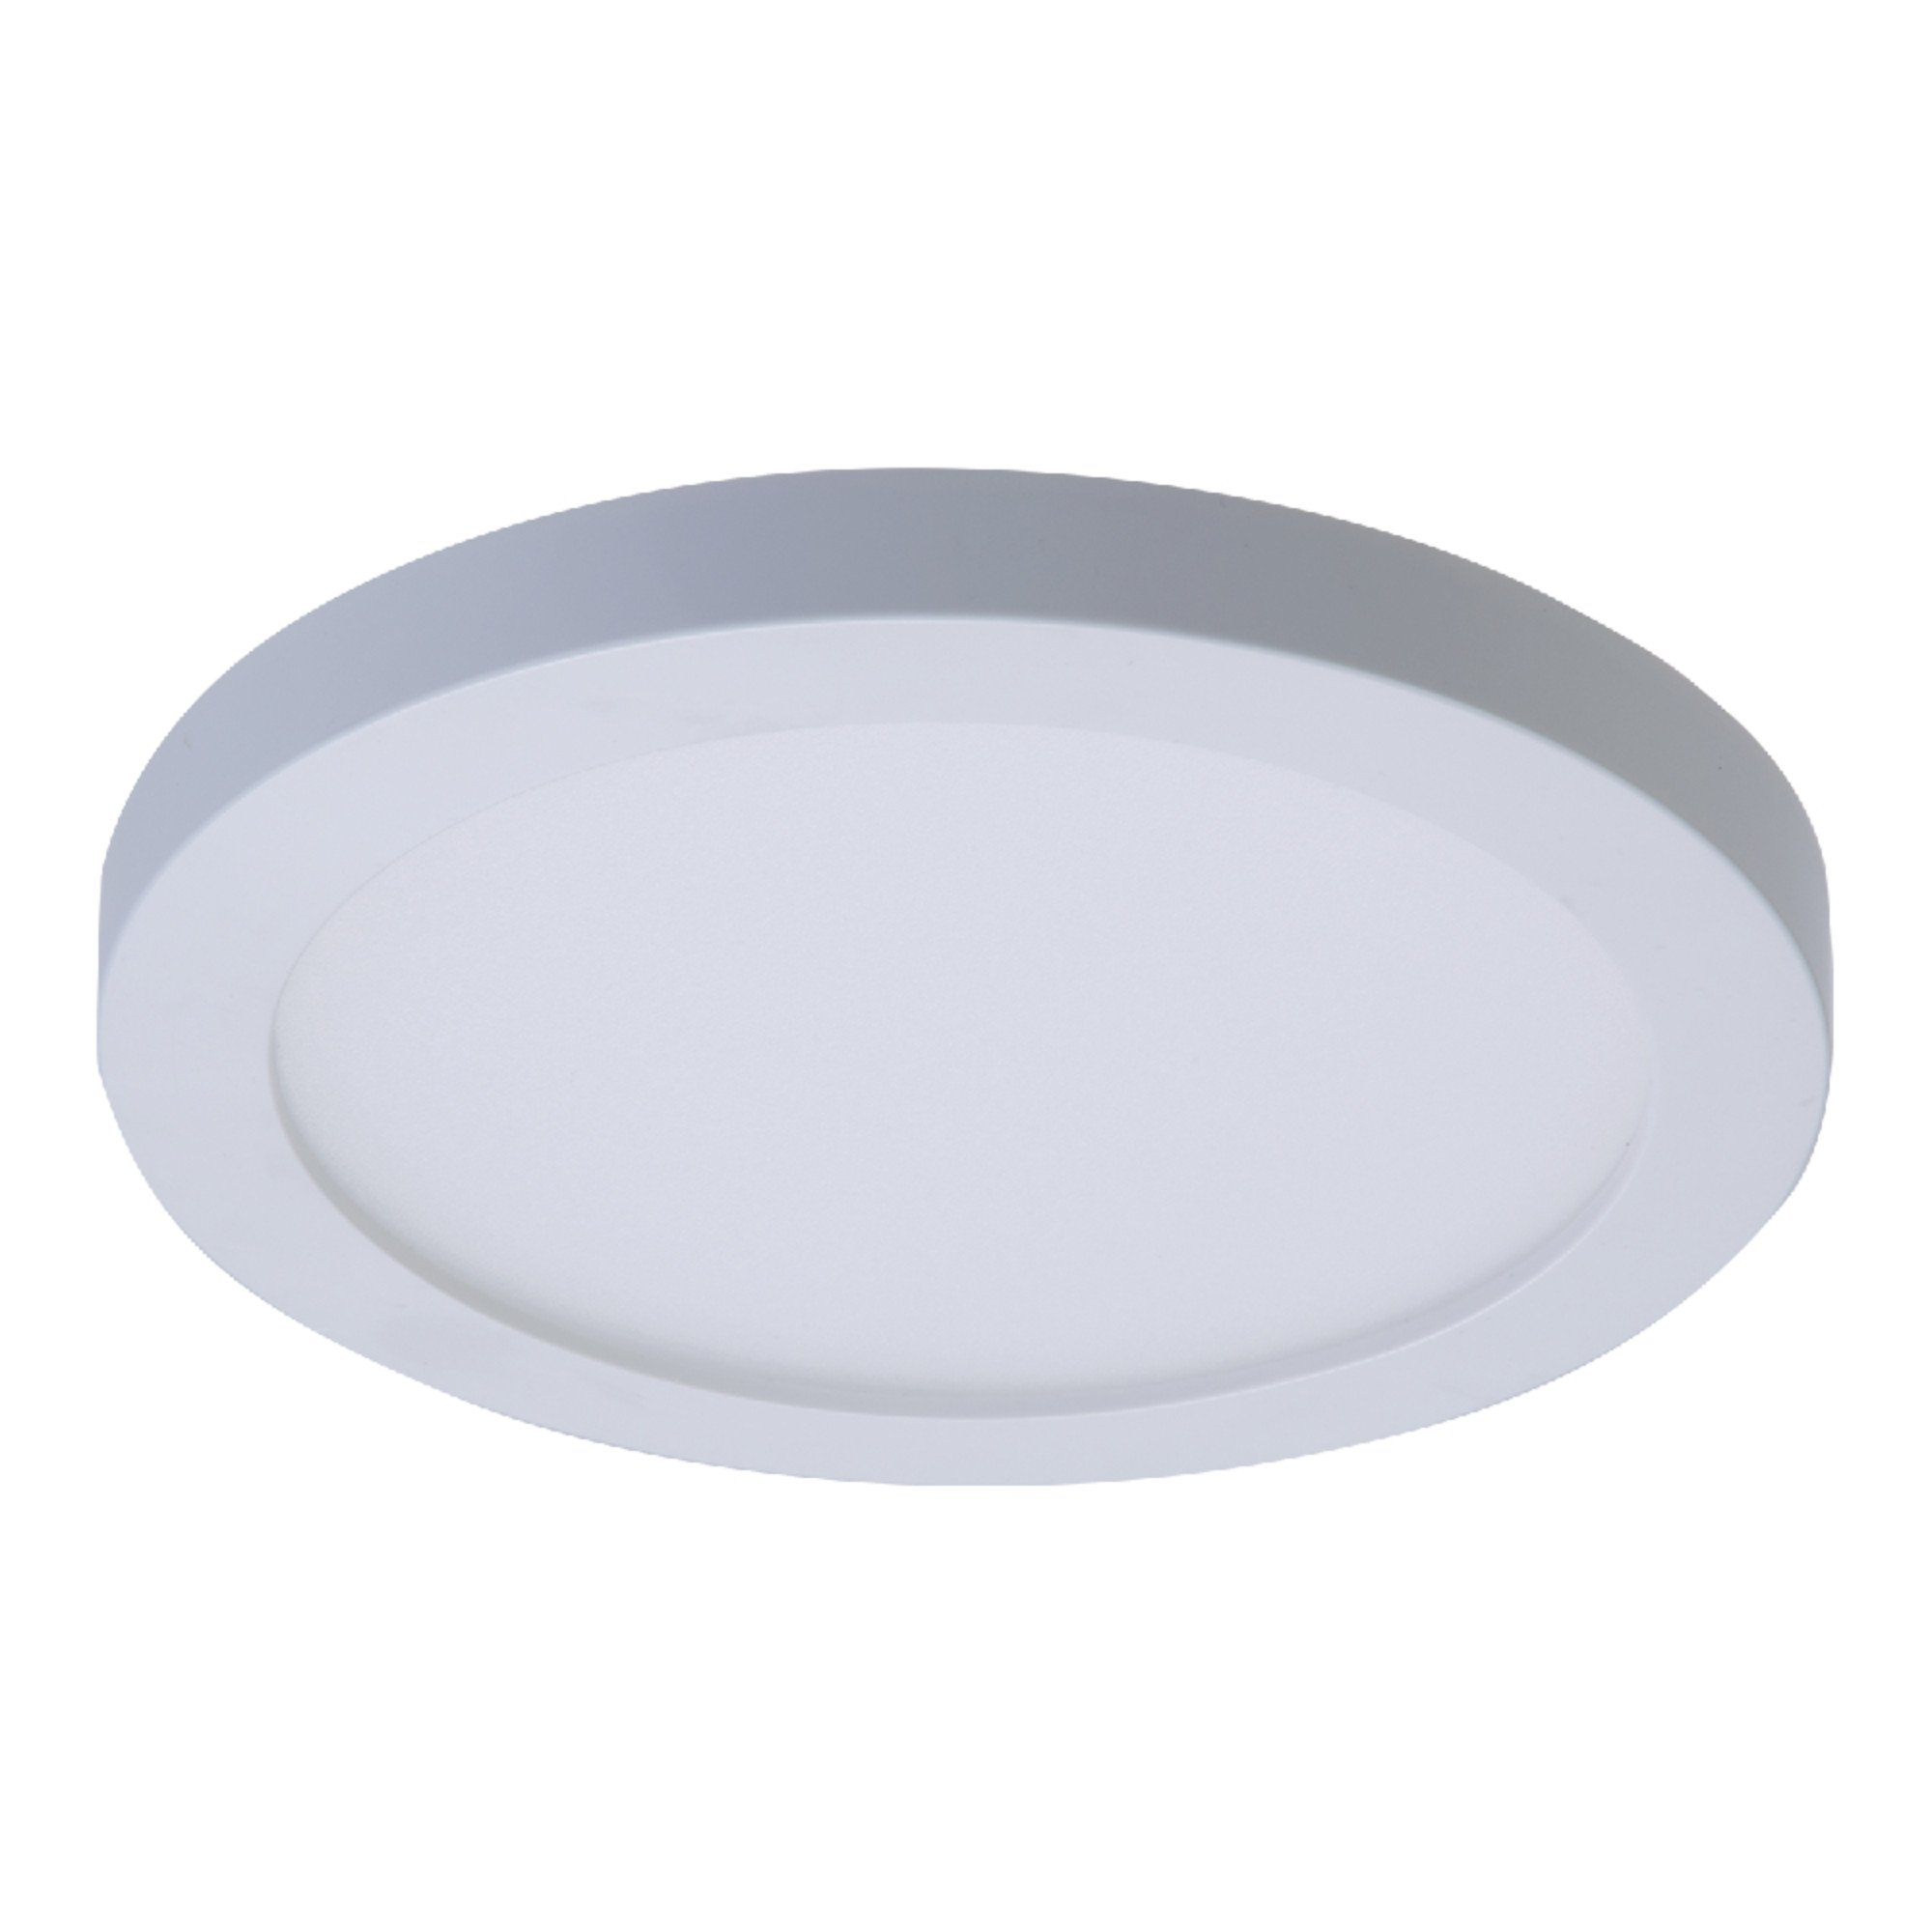 Halo SMD4R6940WH SMD 4000K Integrated LED Round Surface Mount/Recessed Round Trim, 4'', White